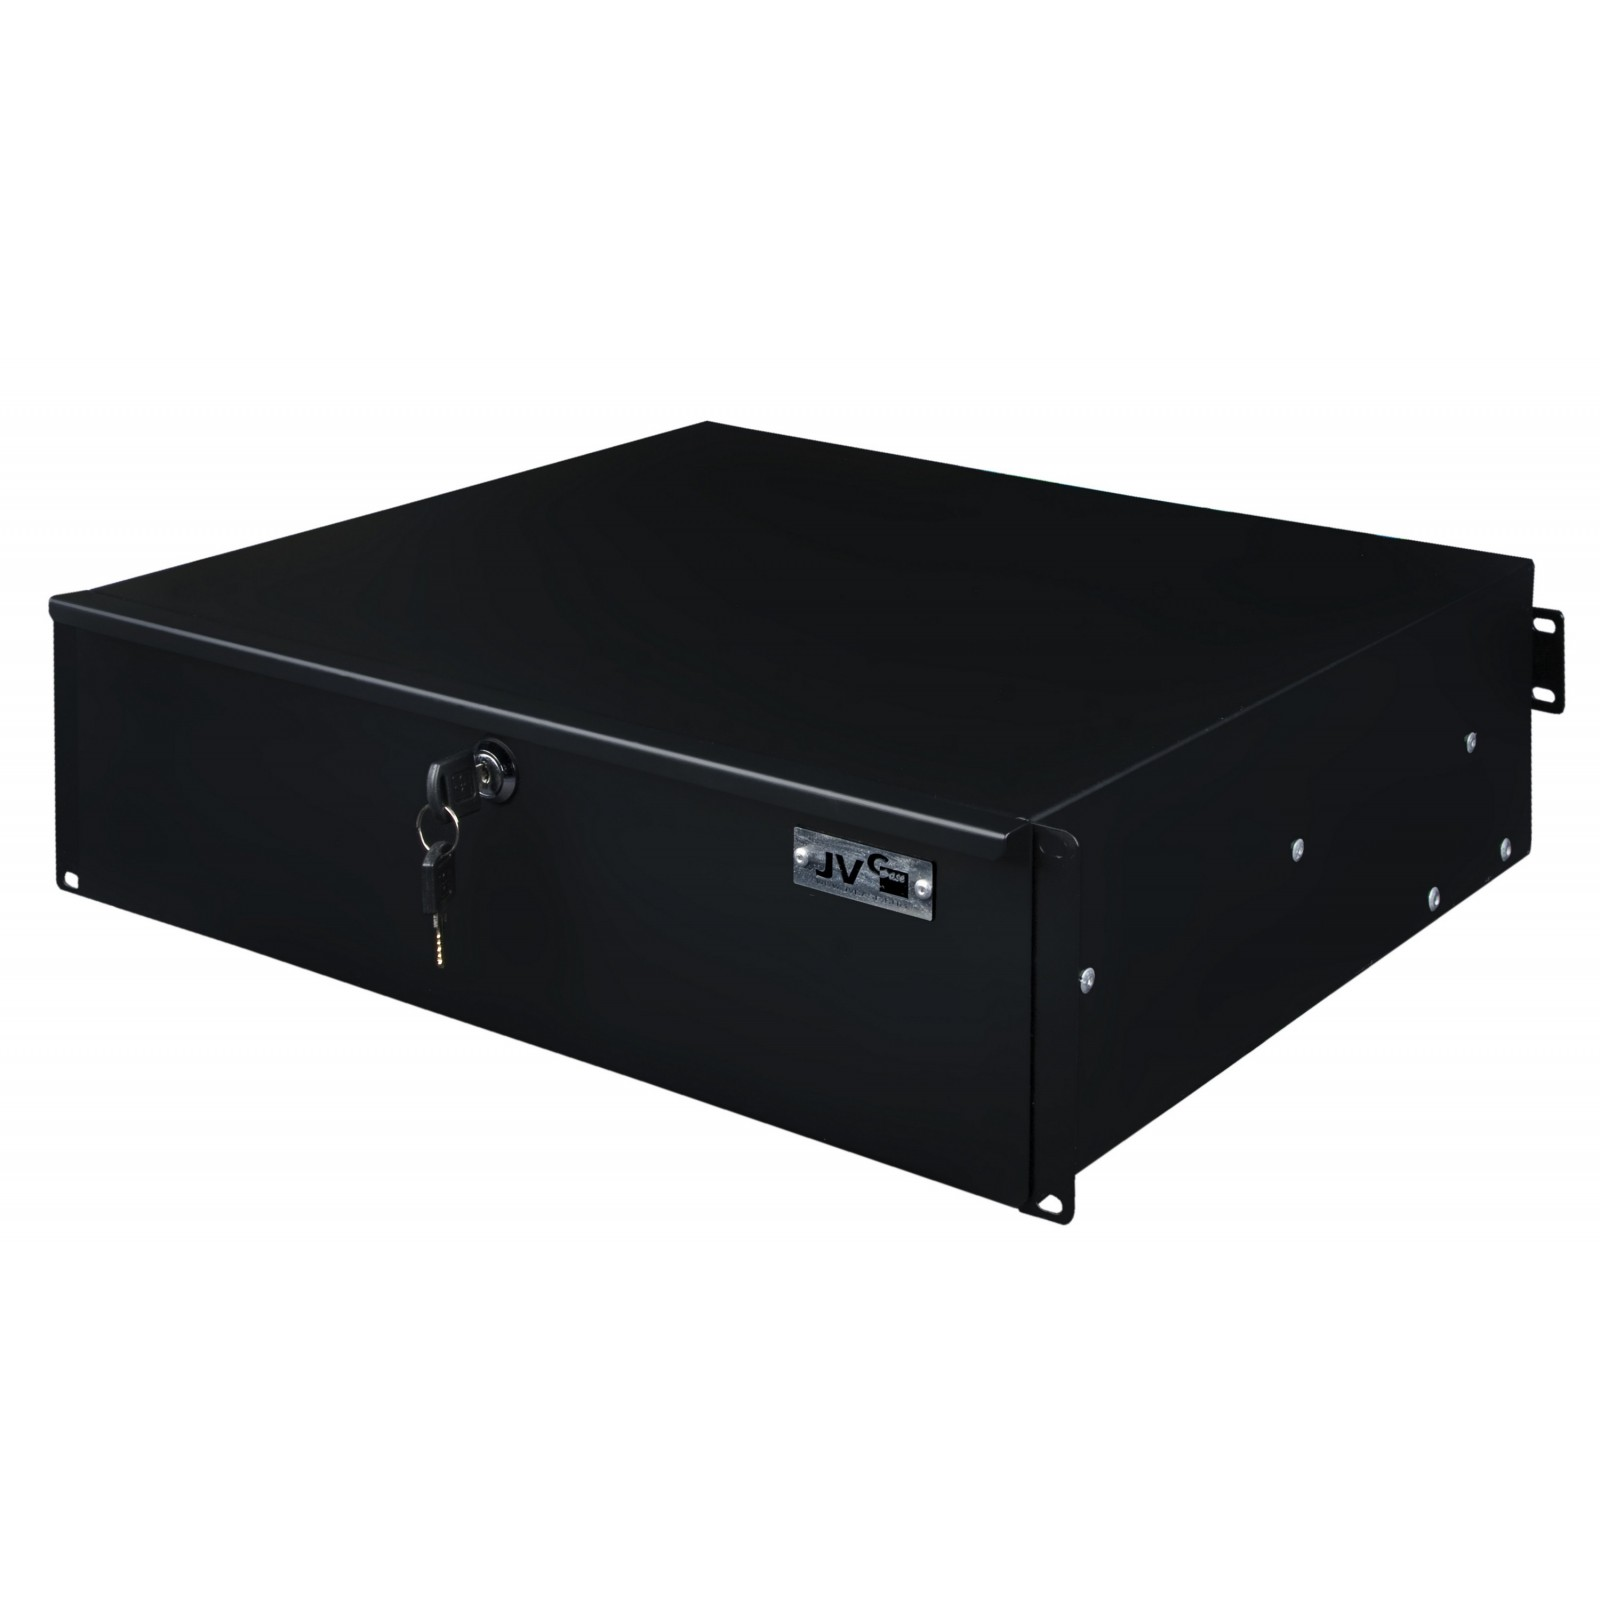 ezserver drawers pinterest drawer us rack case flight pin